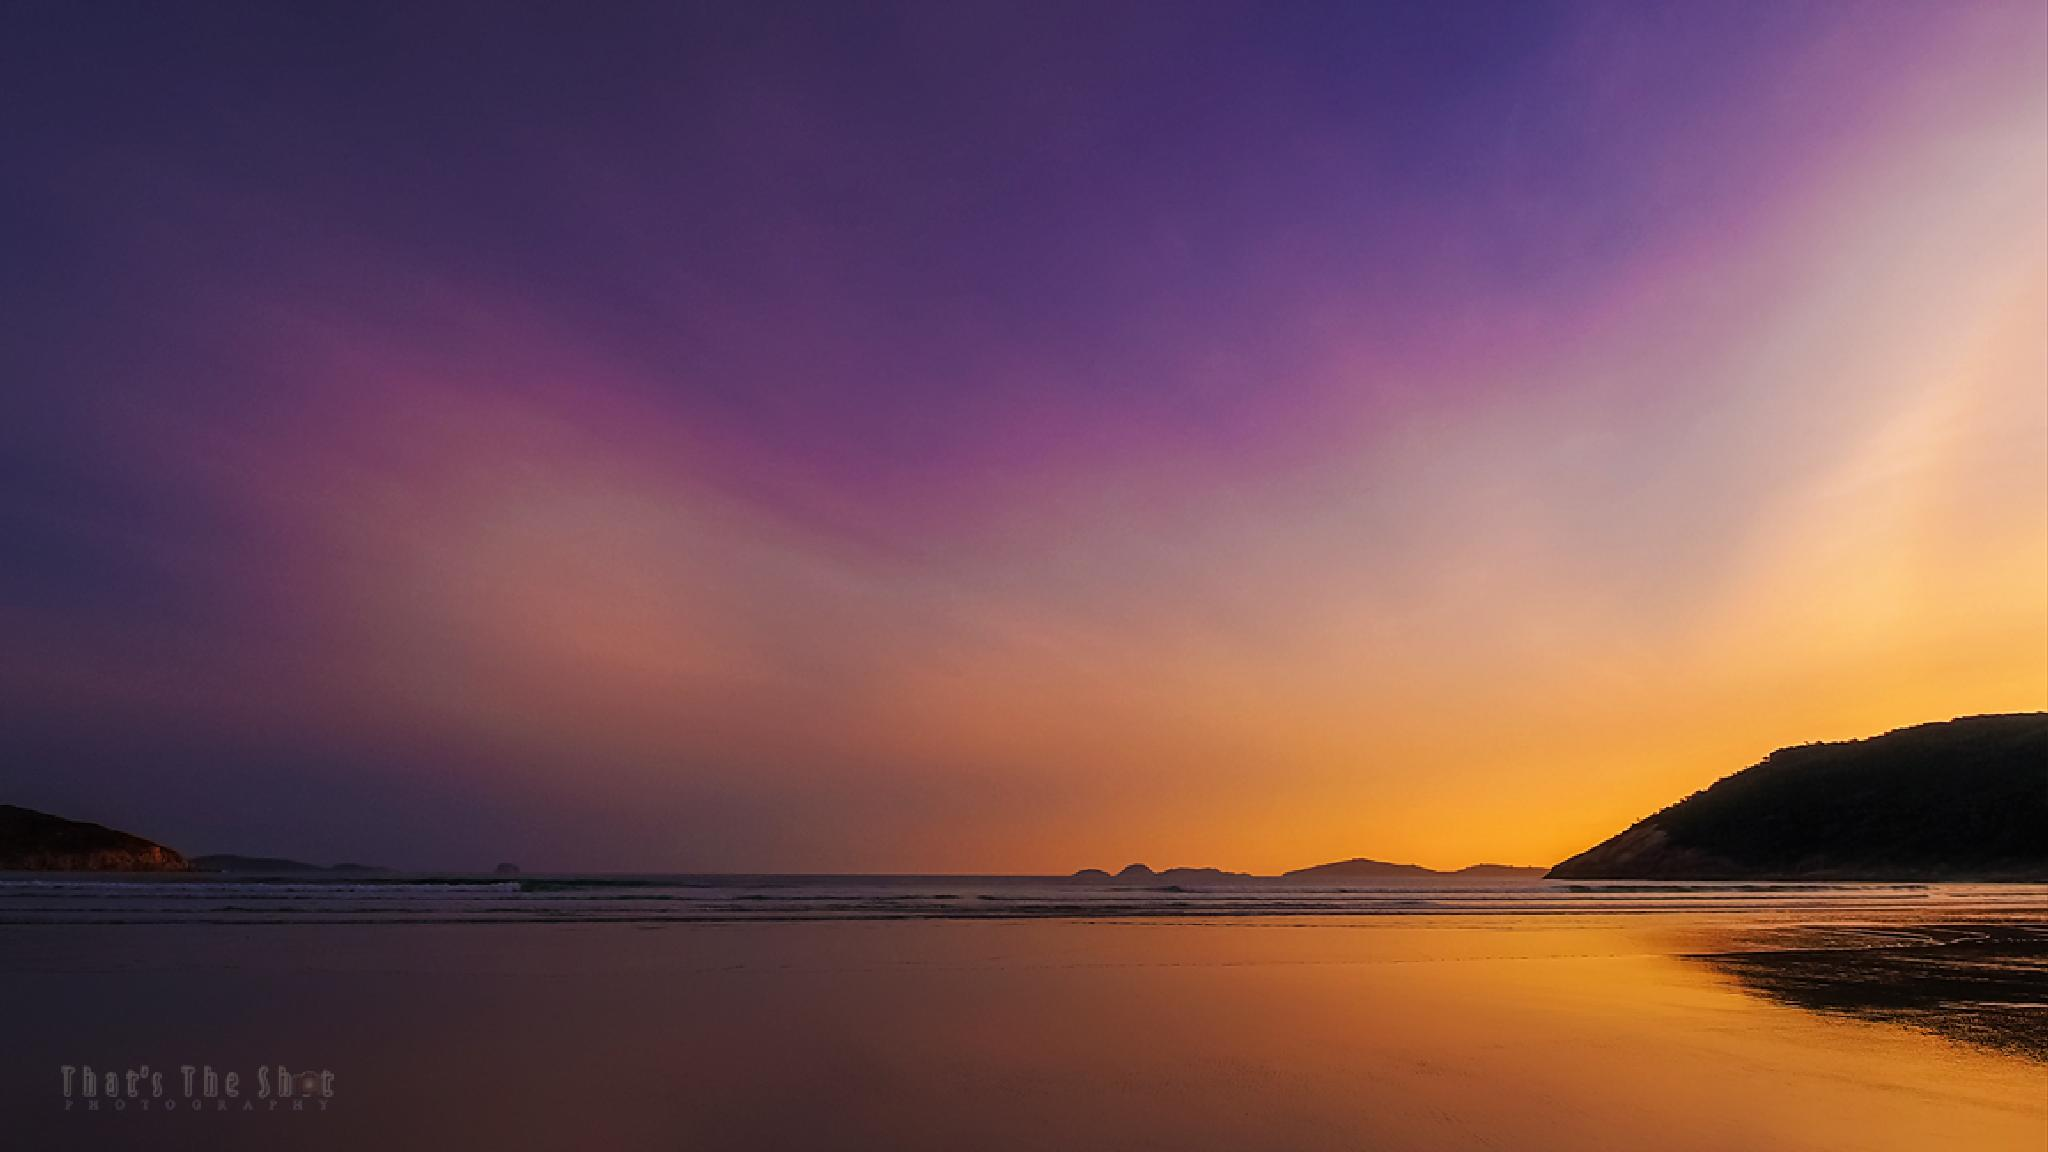 Sunset at Wilsons Prom by ThatsTheShot